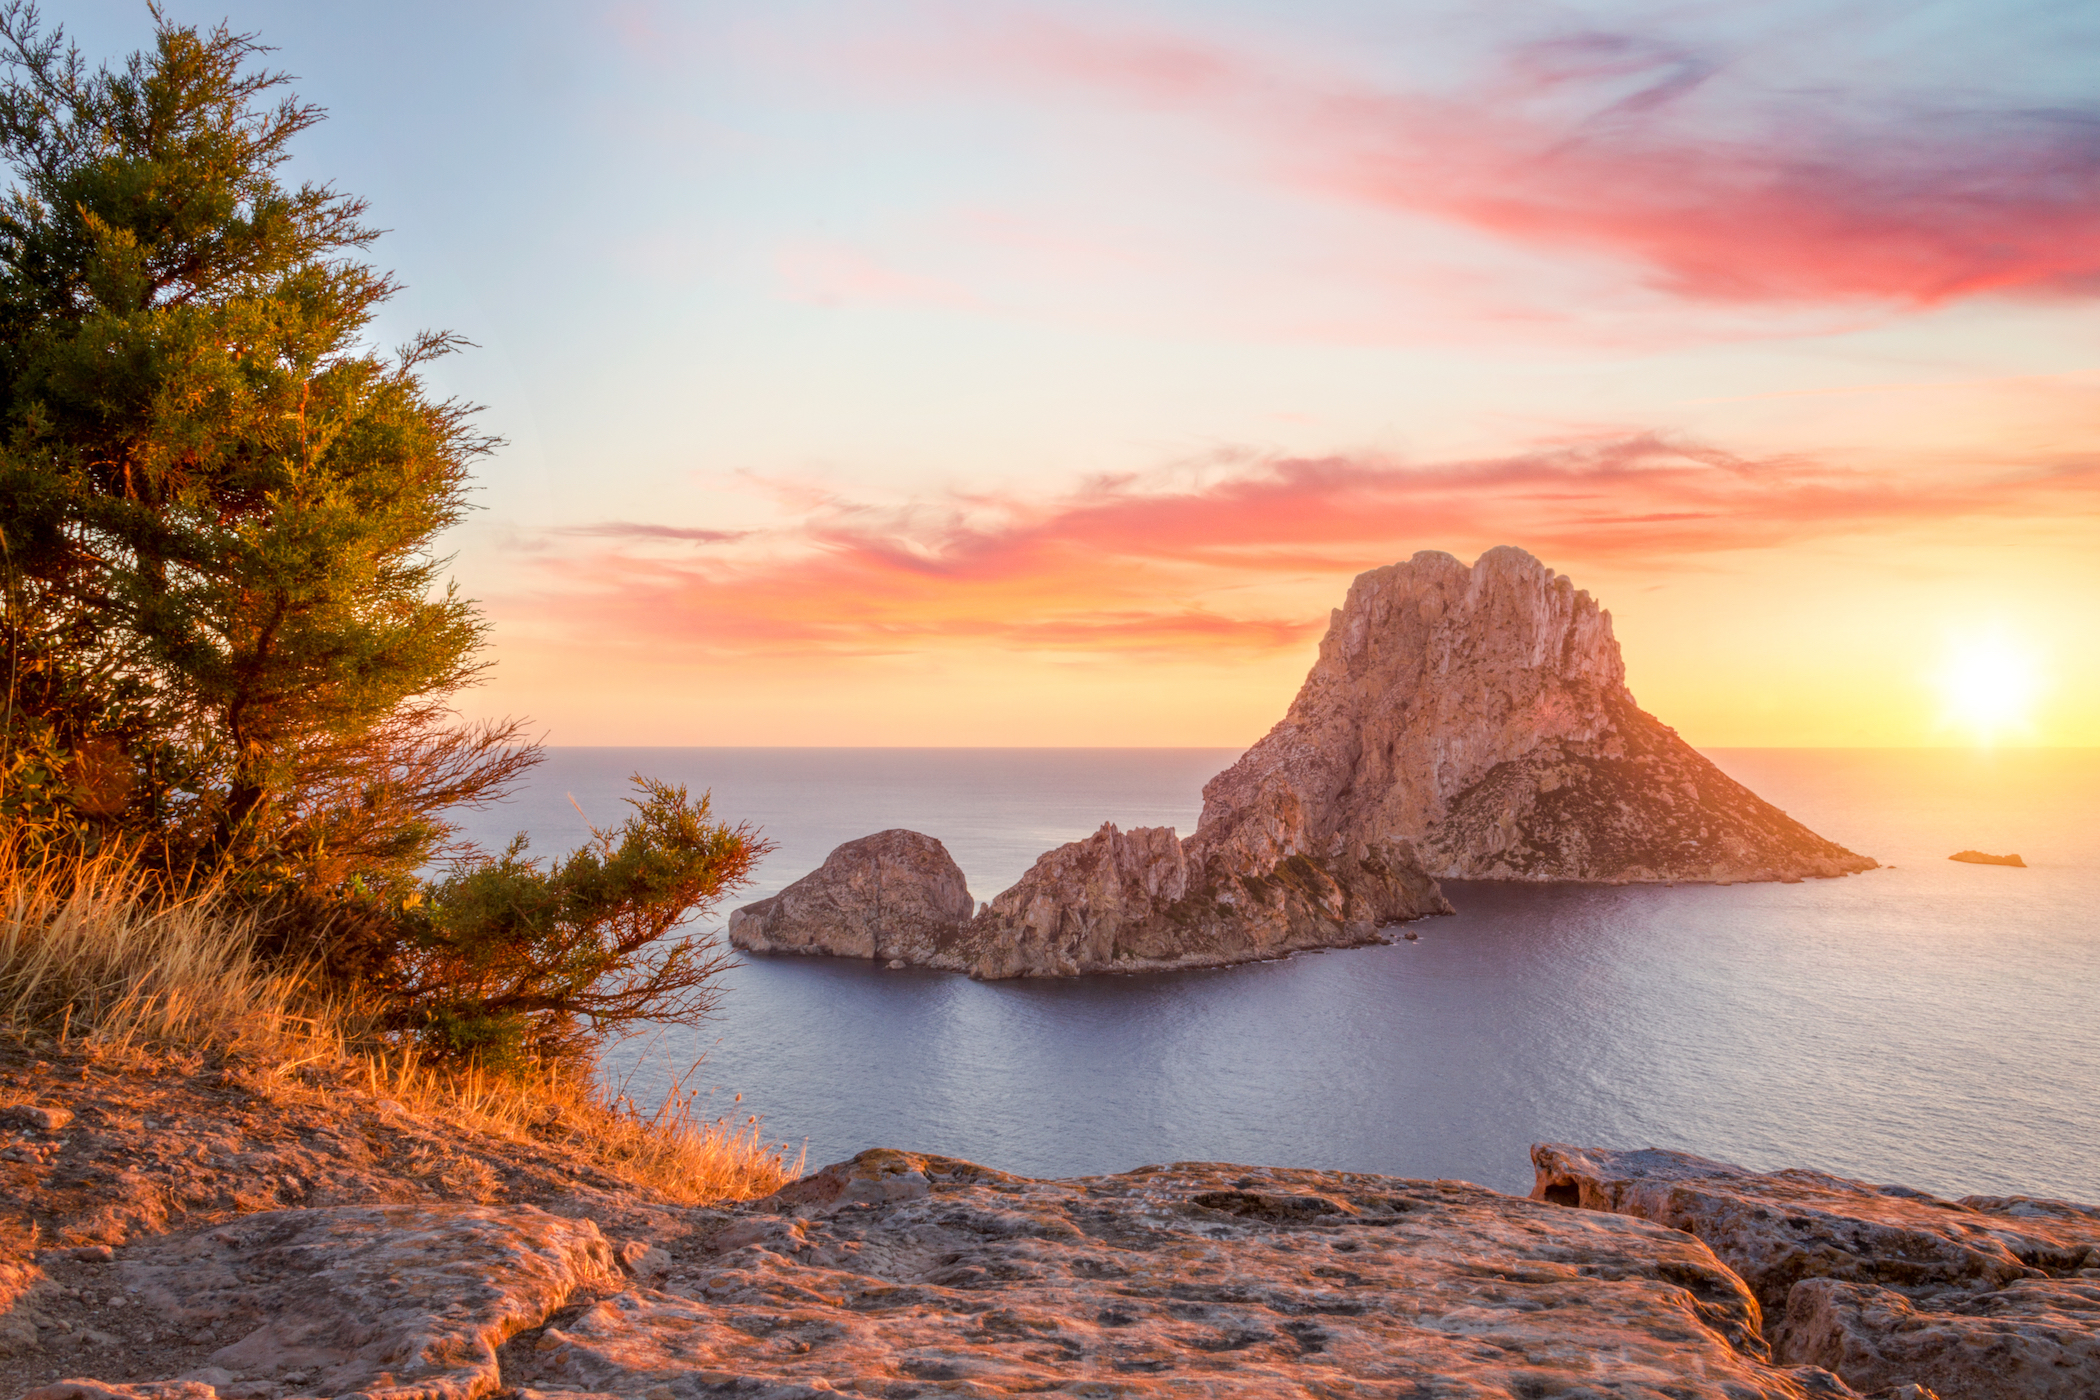 Walking through the nature of Ibiza